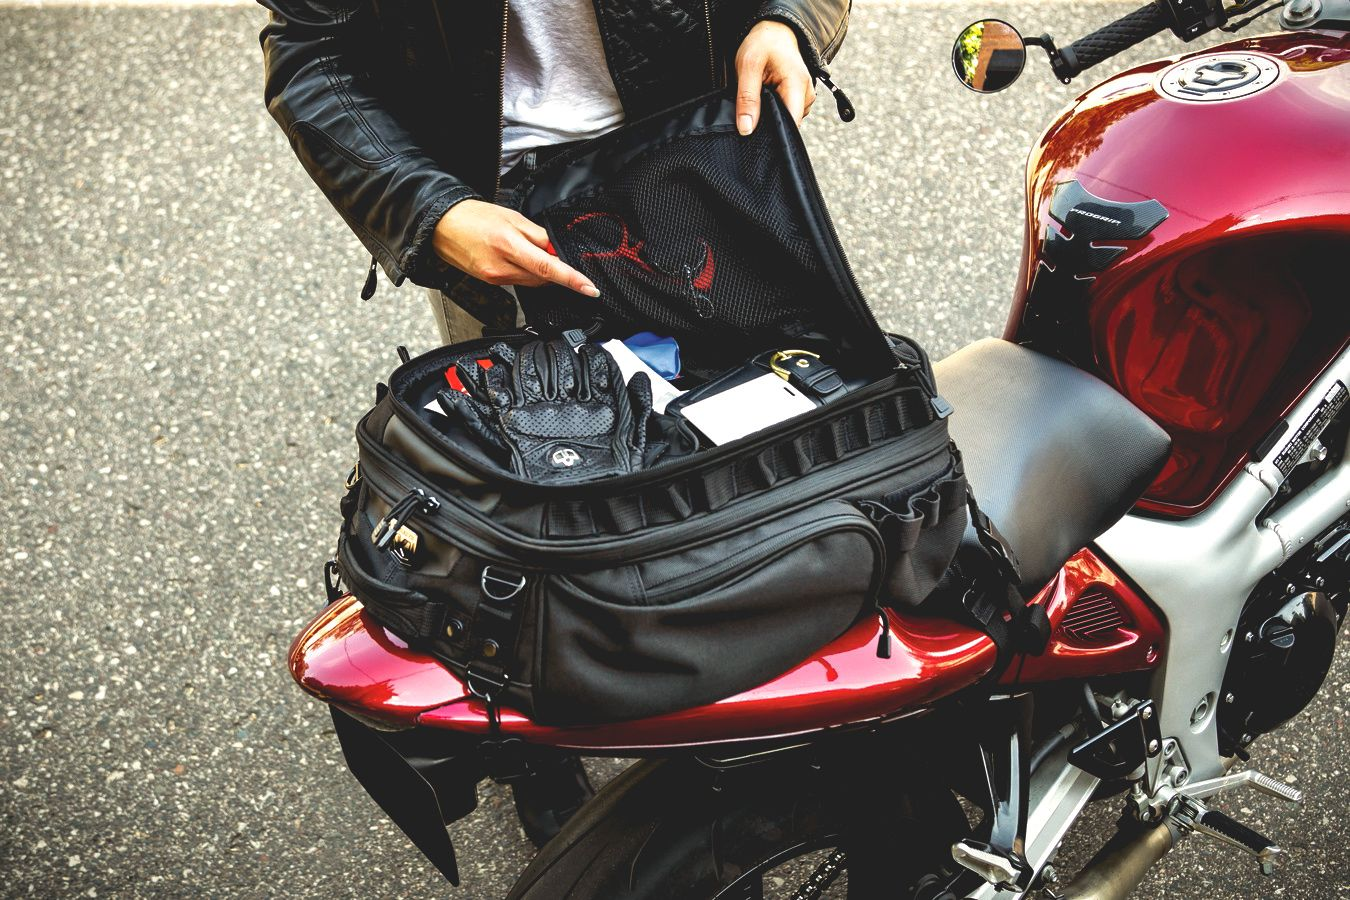 5 Tips to Safely Pack Your Motorcycle